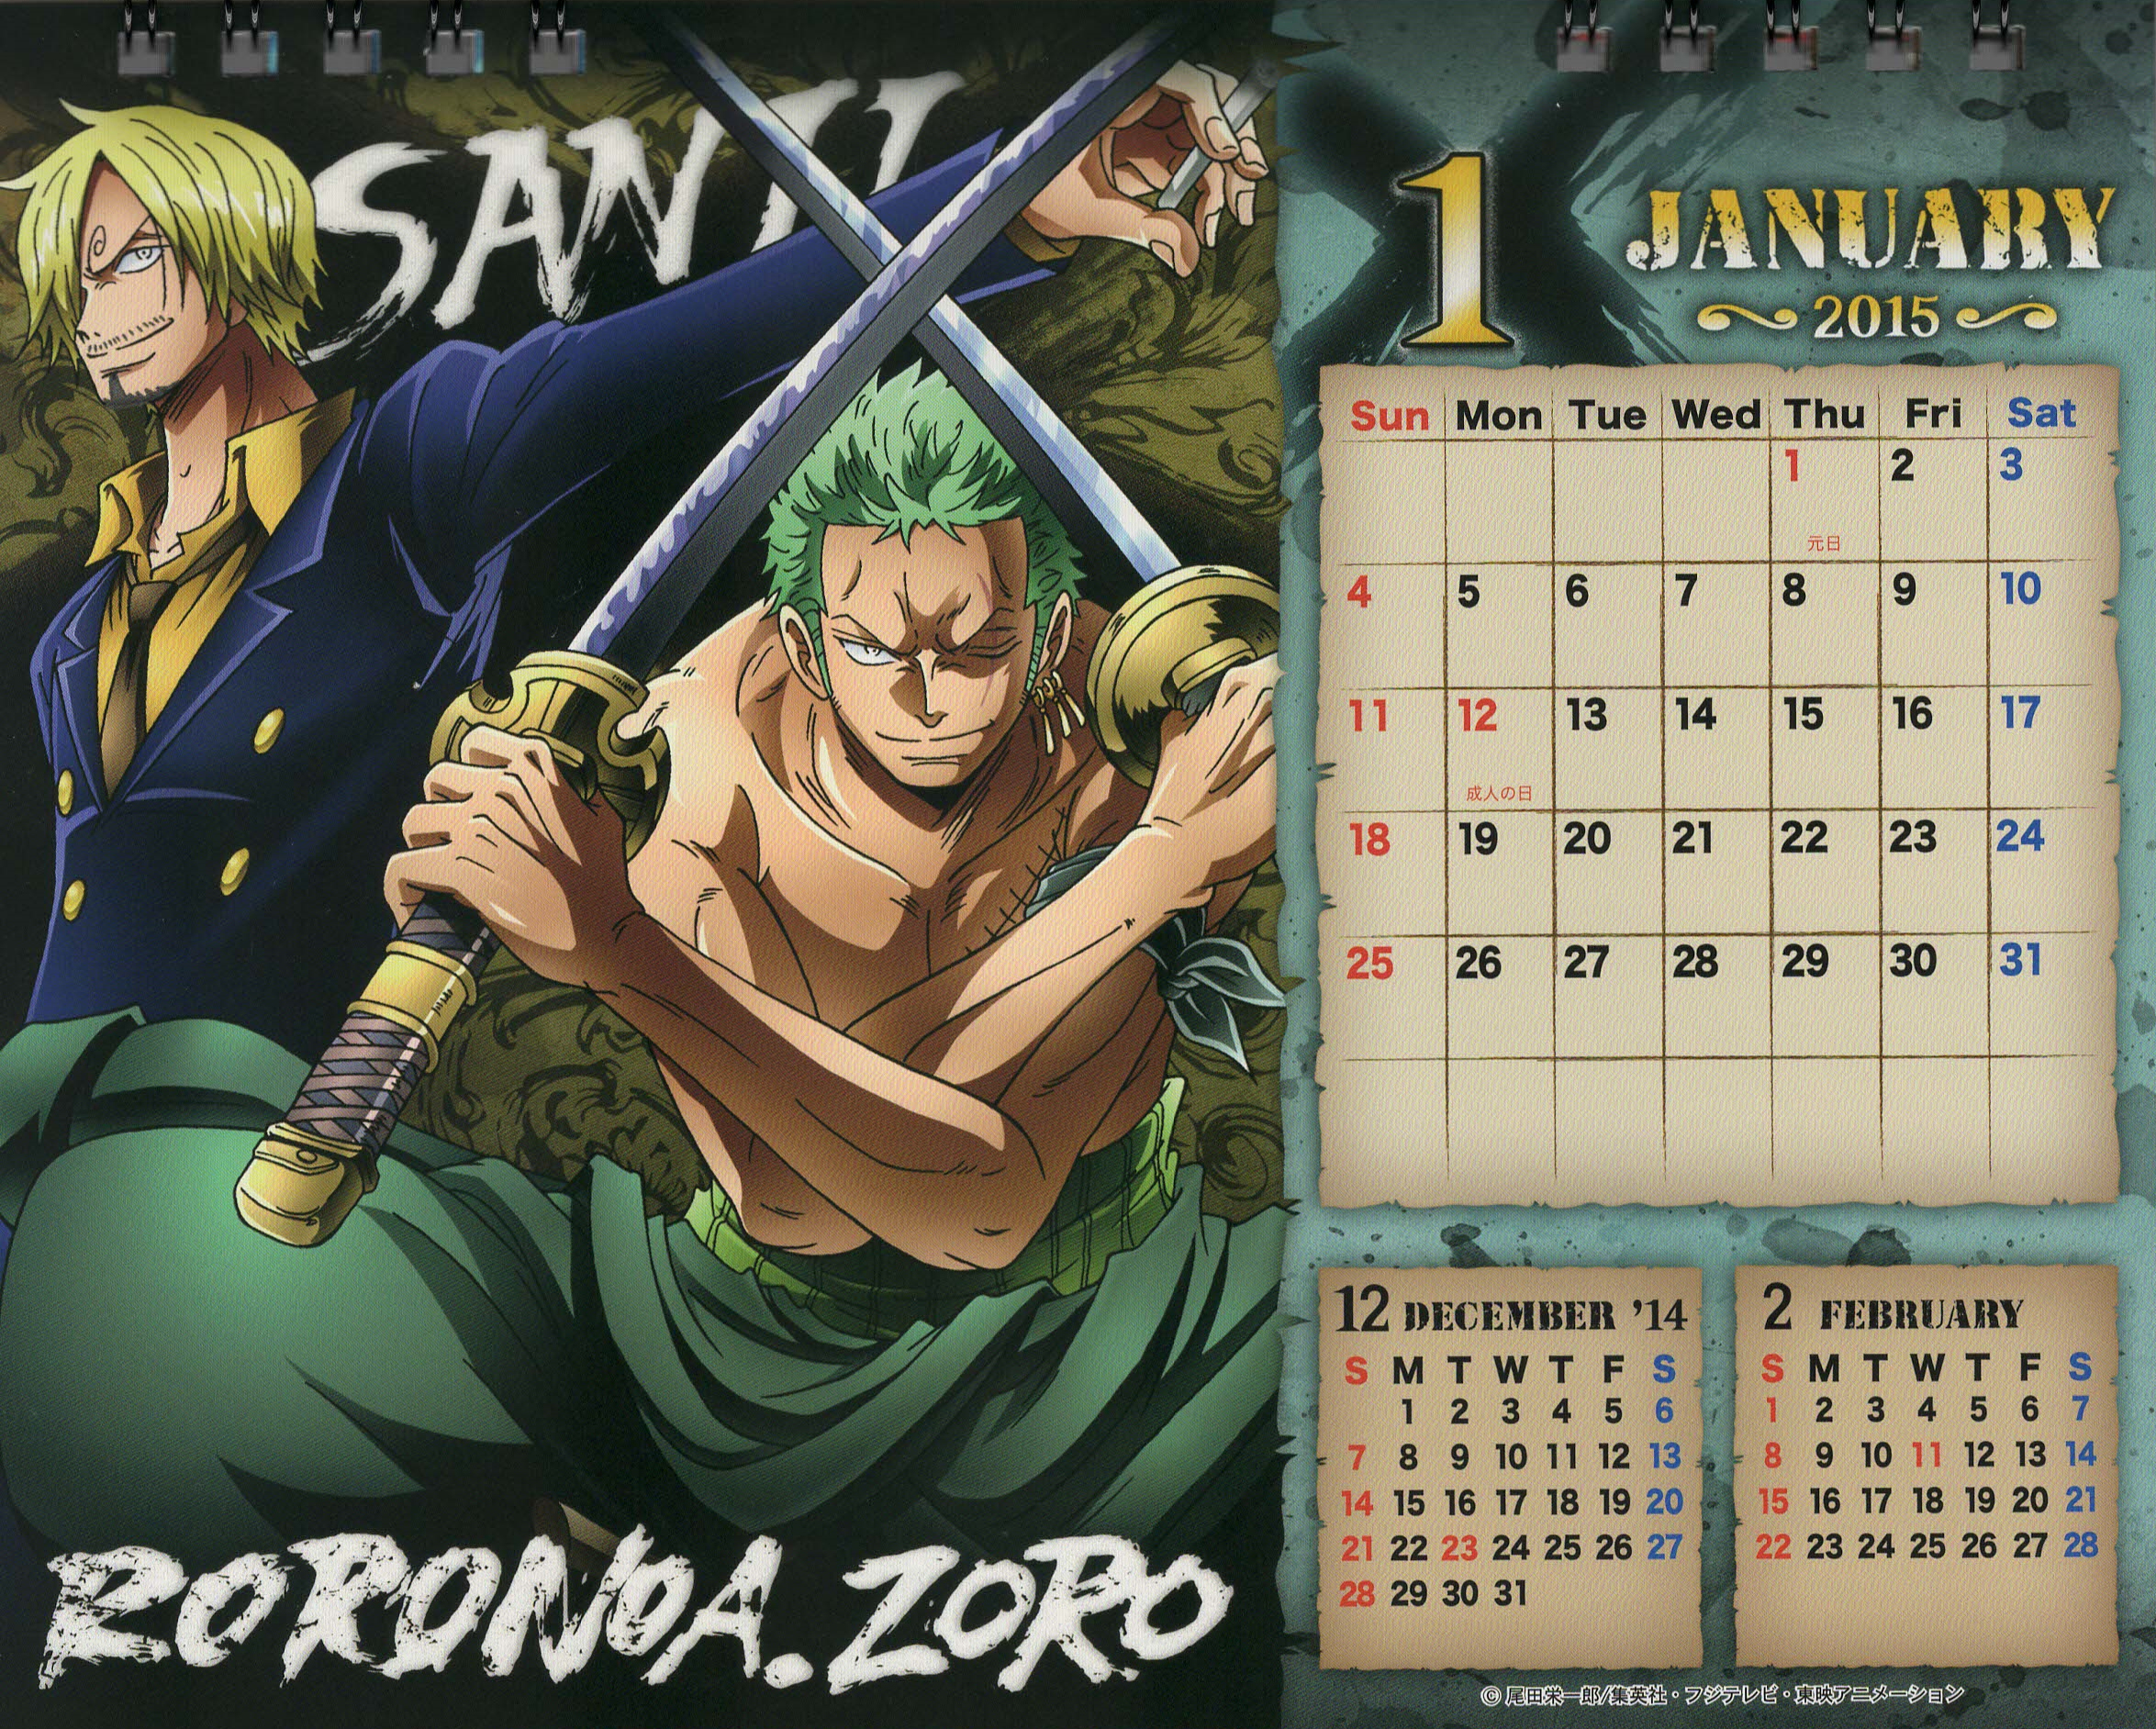 01 Zoro and Sanji (One Piece 2015 Cross Calendar)